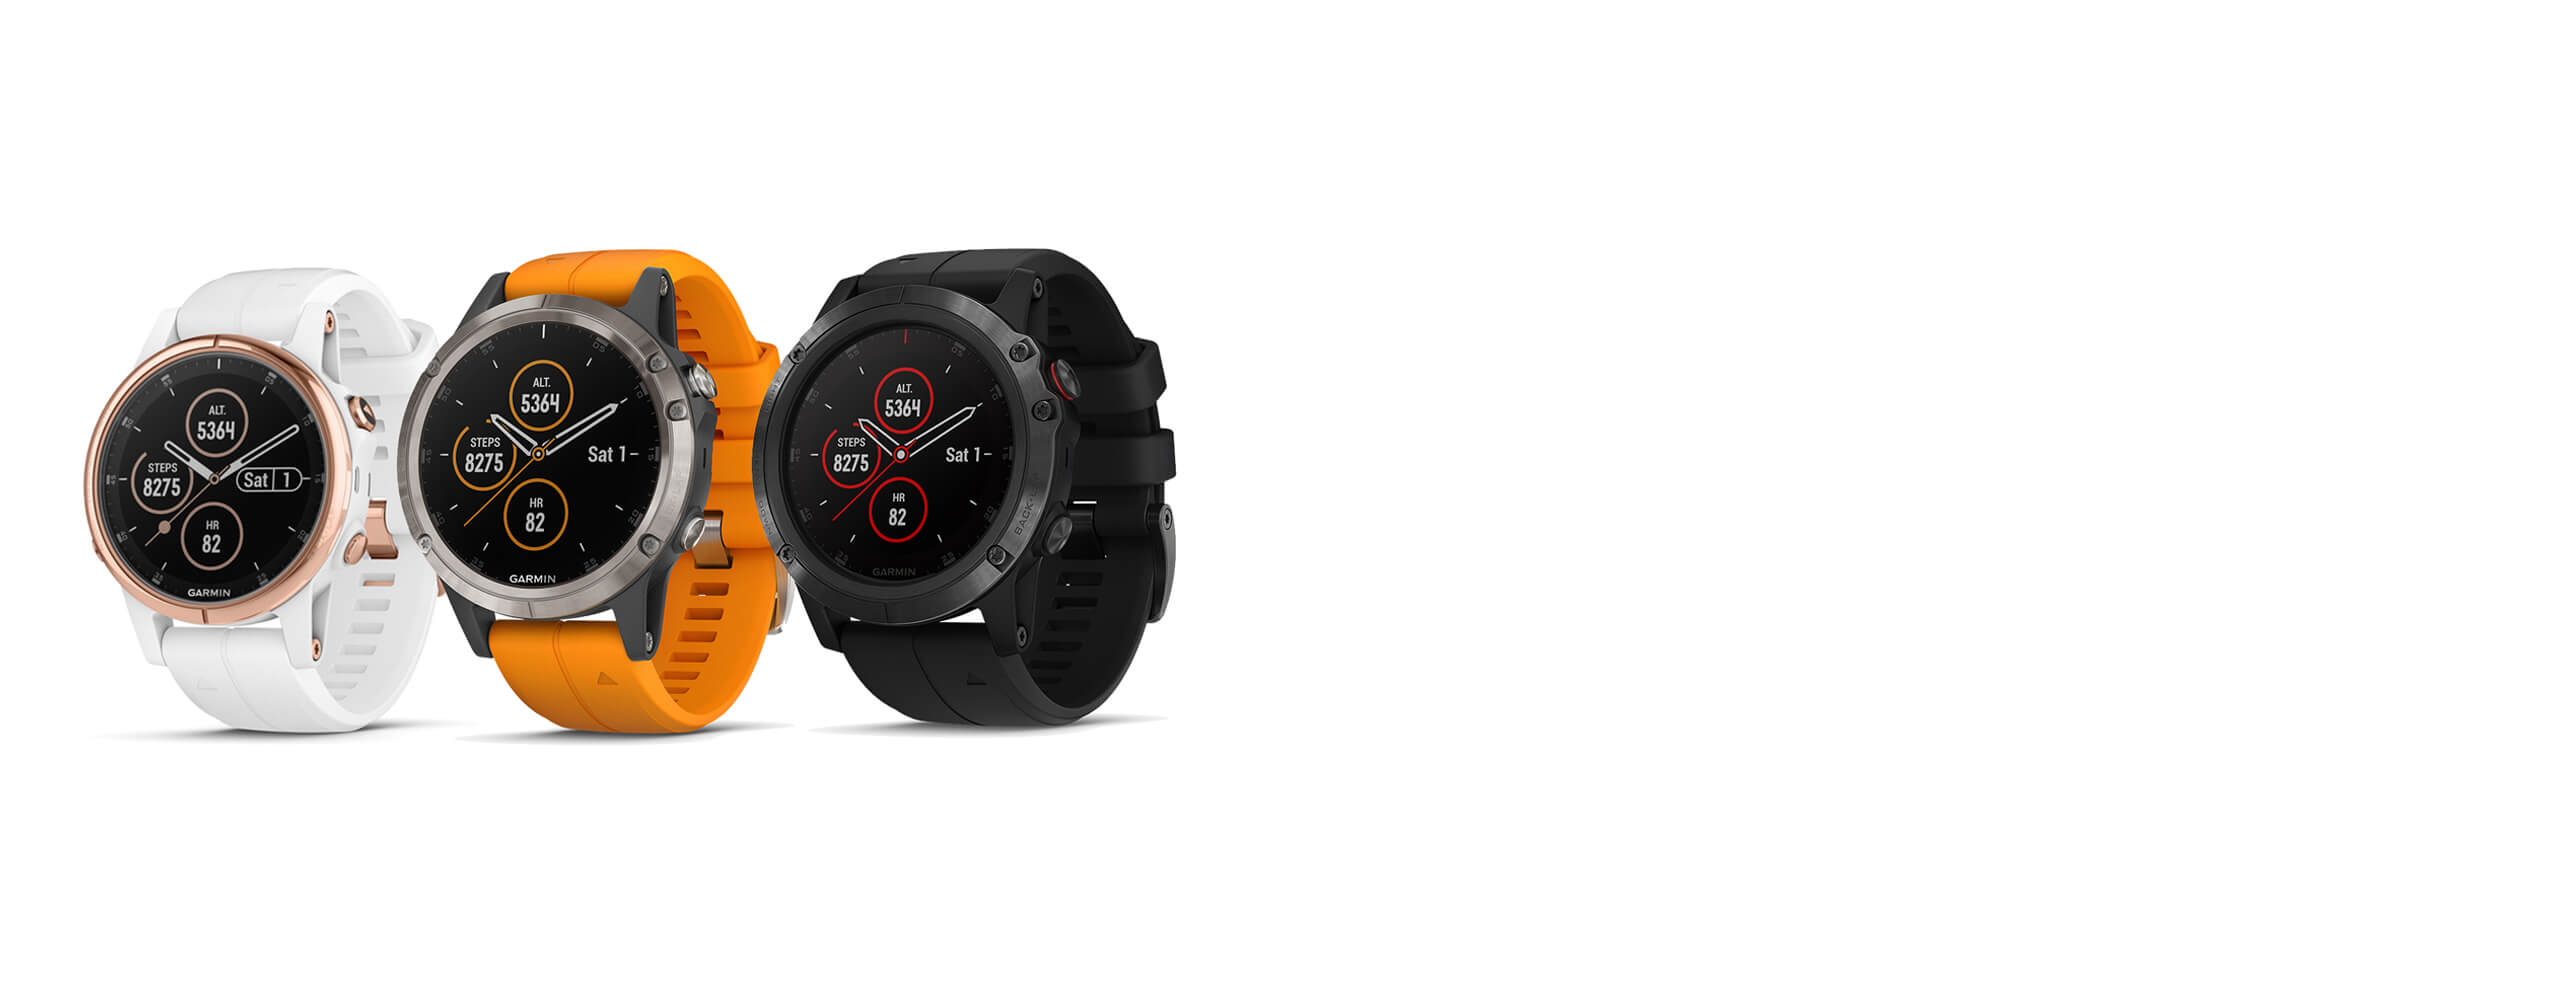 garmin-fenix-5-plus-slideshow-01